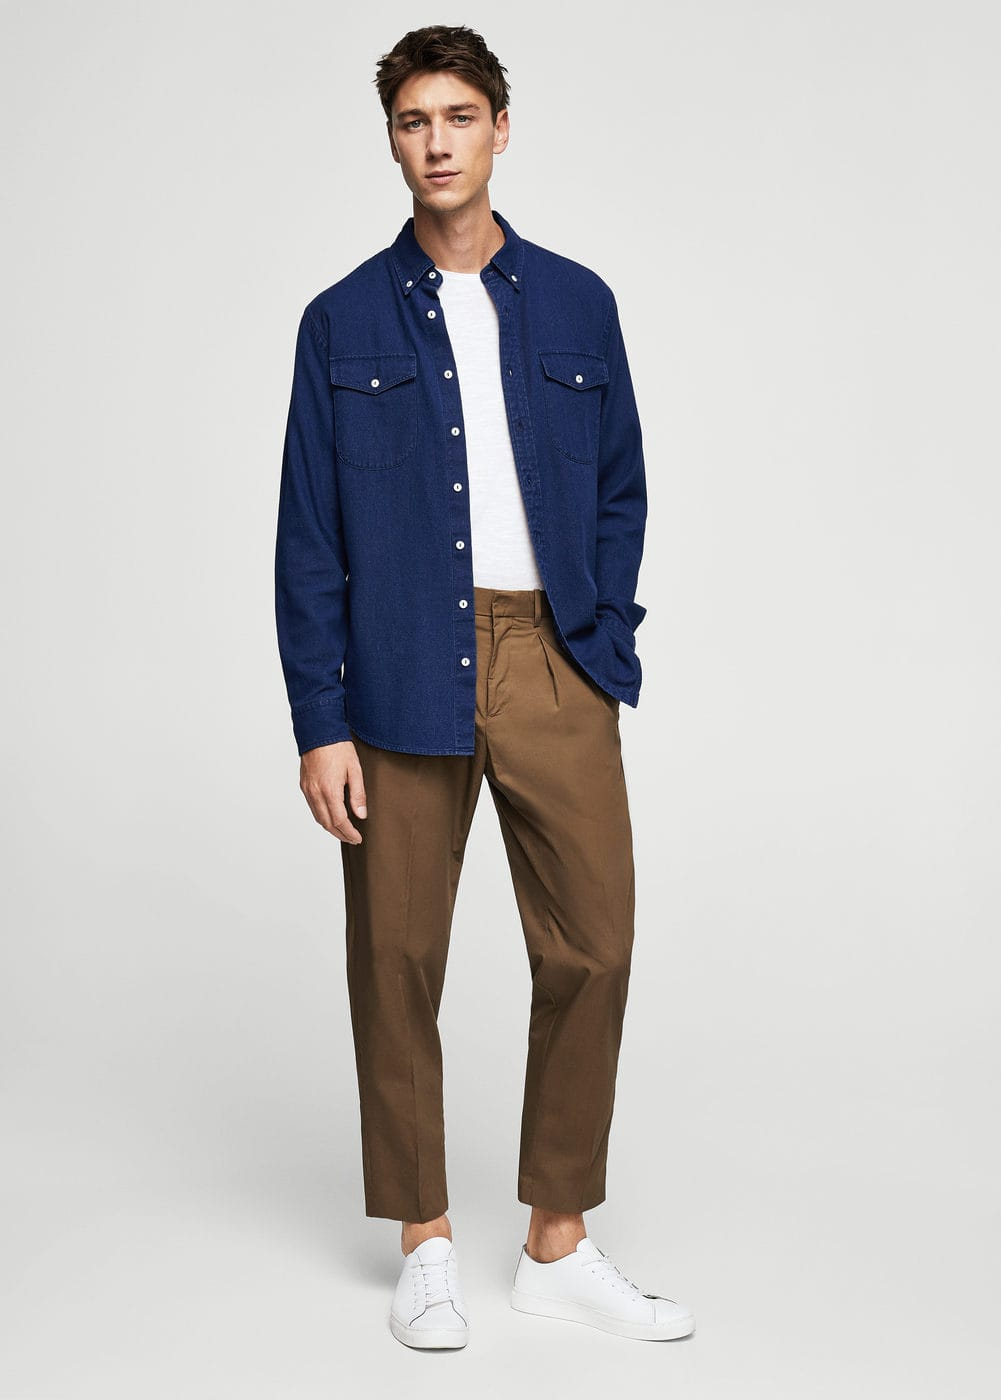 Slim fit hemd, baumwoll-chambray | MANGO